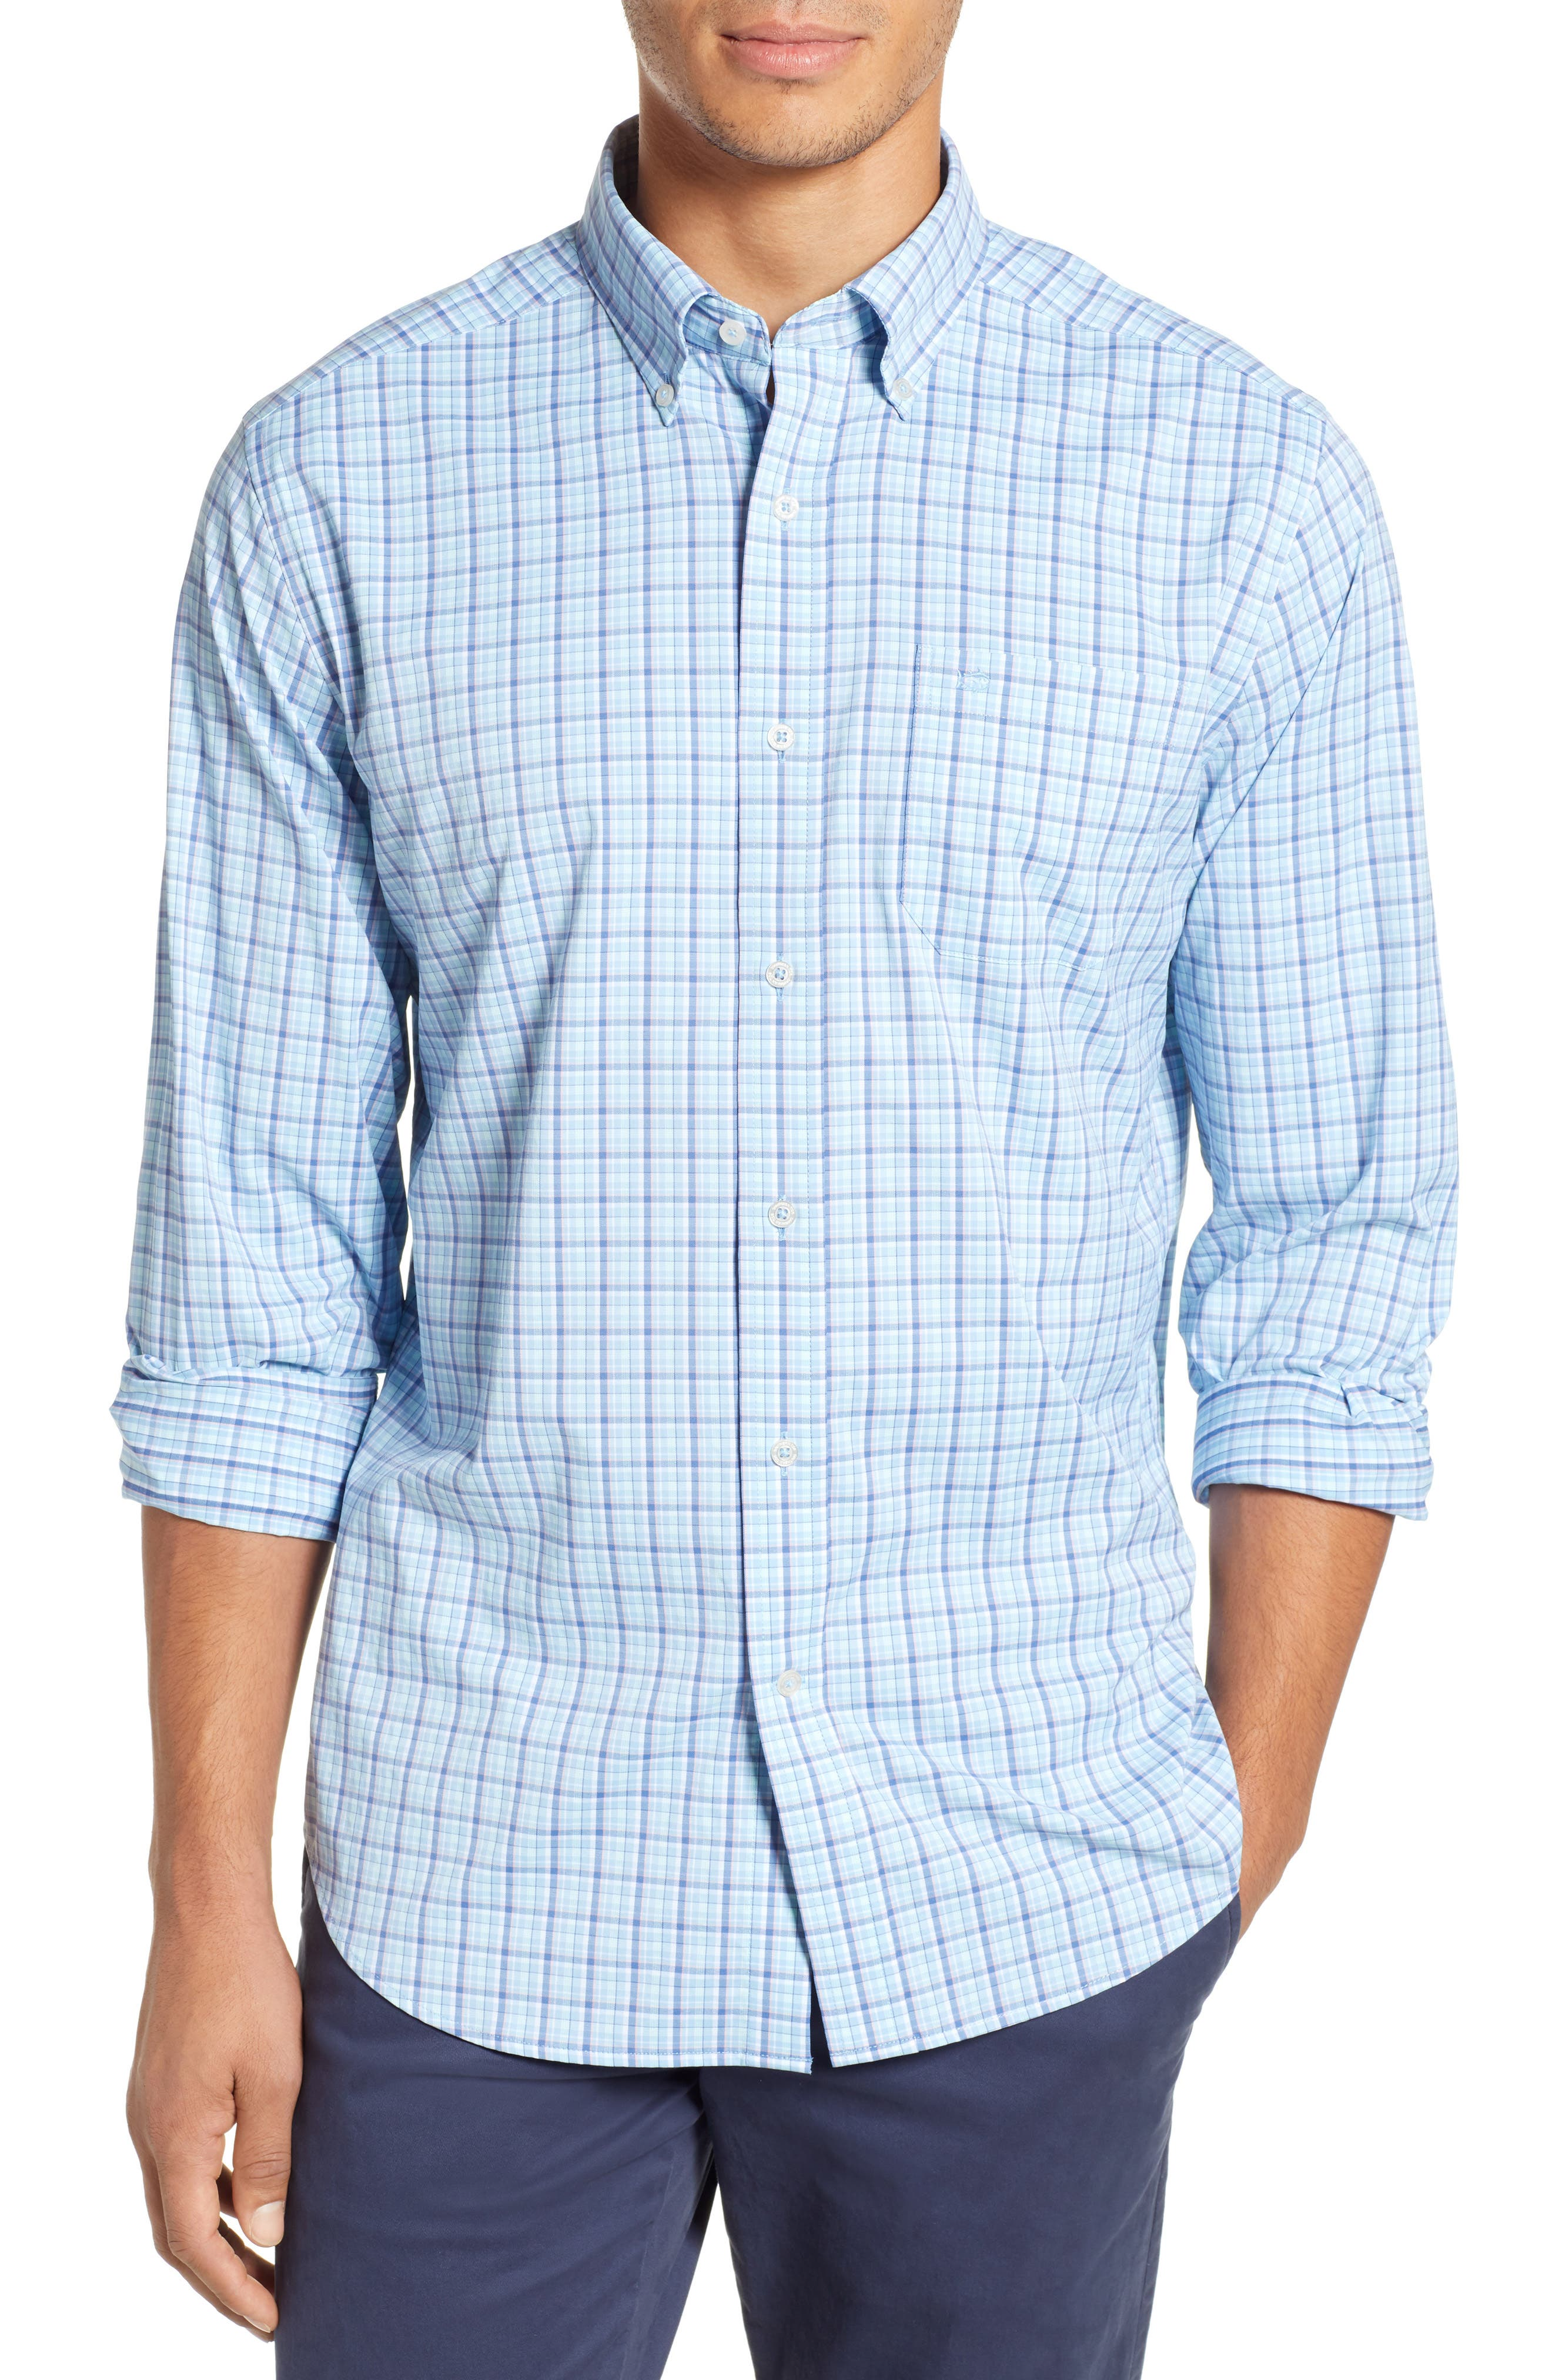 SOUTHERN TIDE Staycation Intercoastal Regular Fit Plaid Performance Sport Shirt in Sky Blue